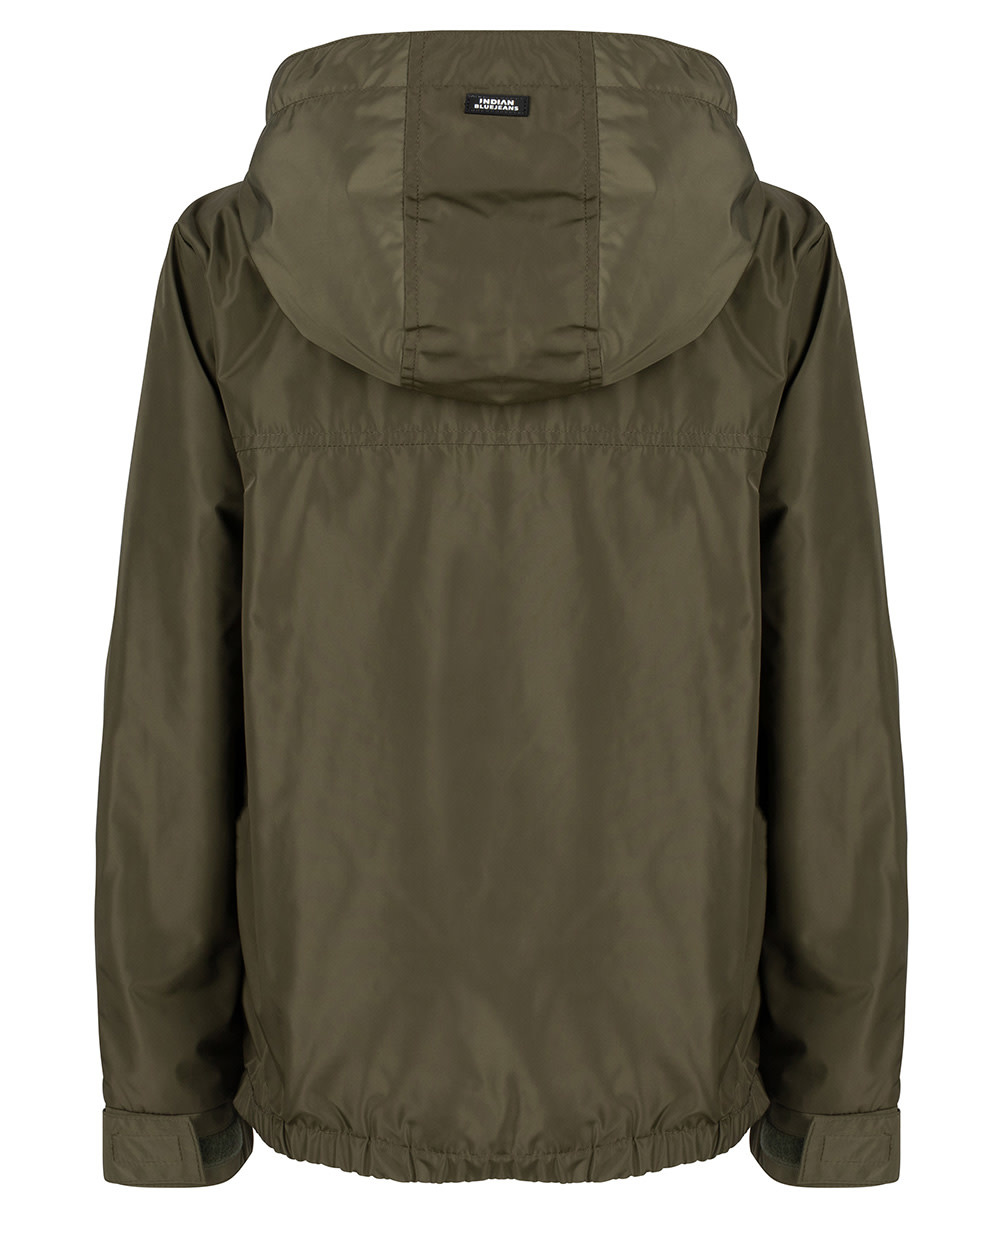 Indian Blue Jeans Anorak Jacket